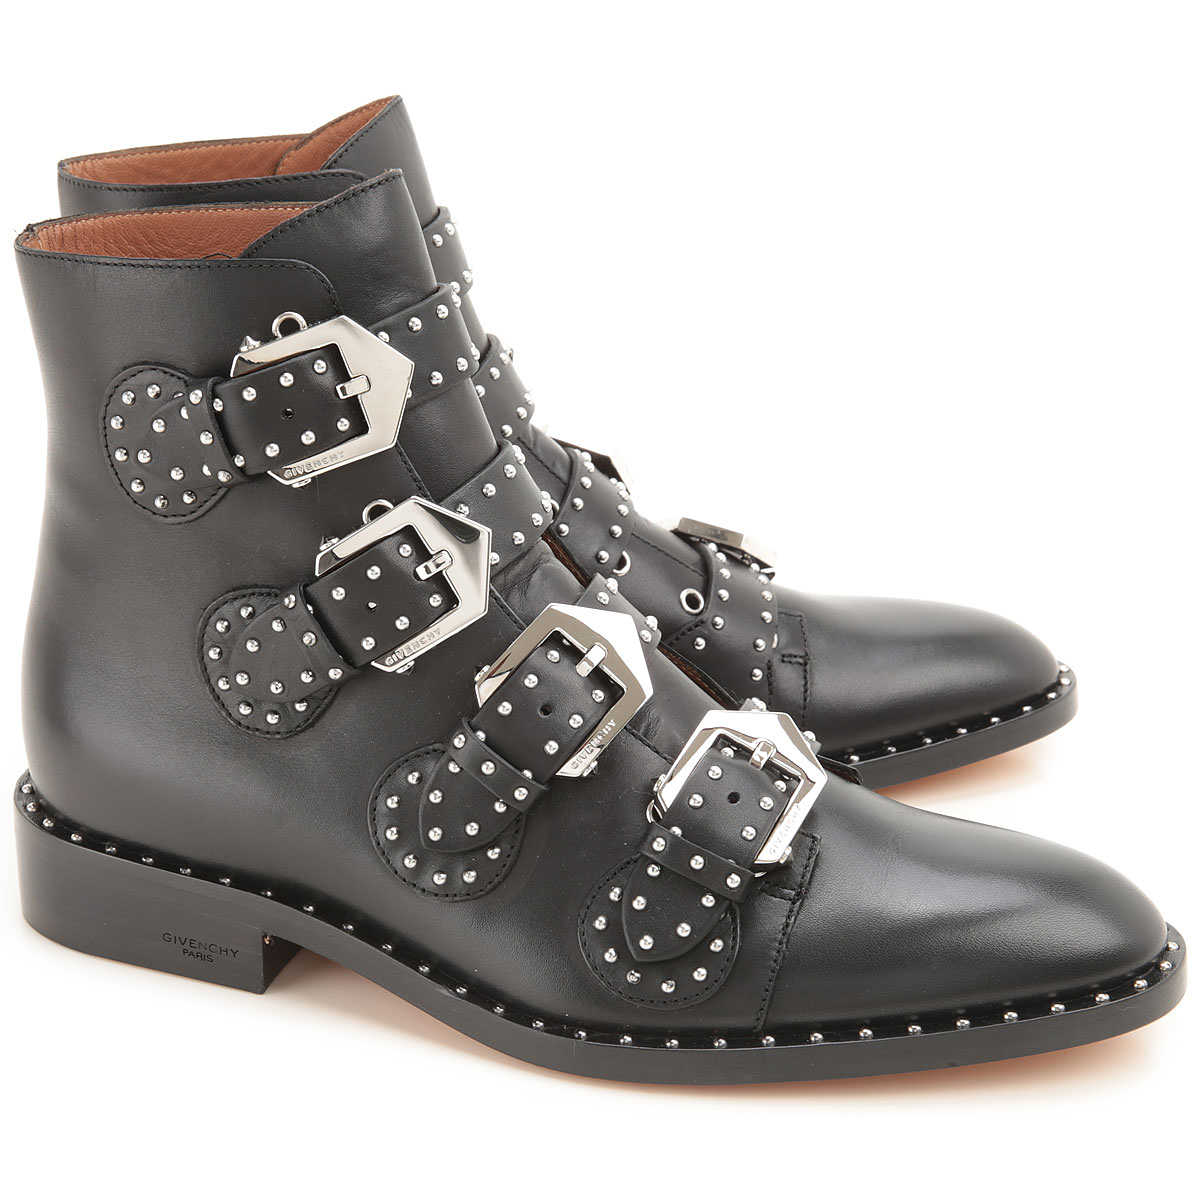 Givenchy Boots for Women 3 3.5 4 4.5 5.5 6 6.5 7.5 Booties UK - GOOFASH